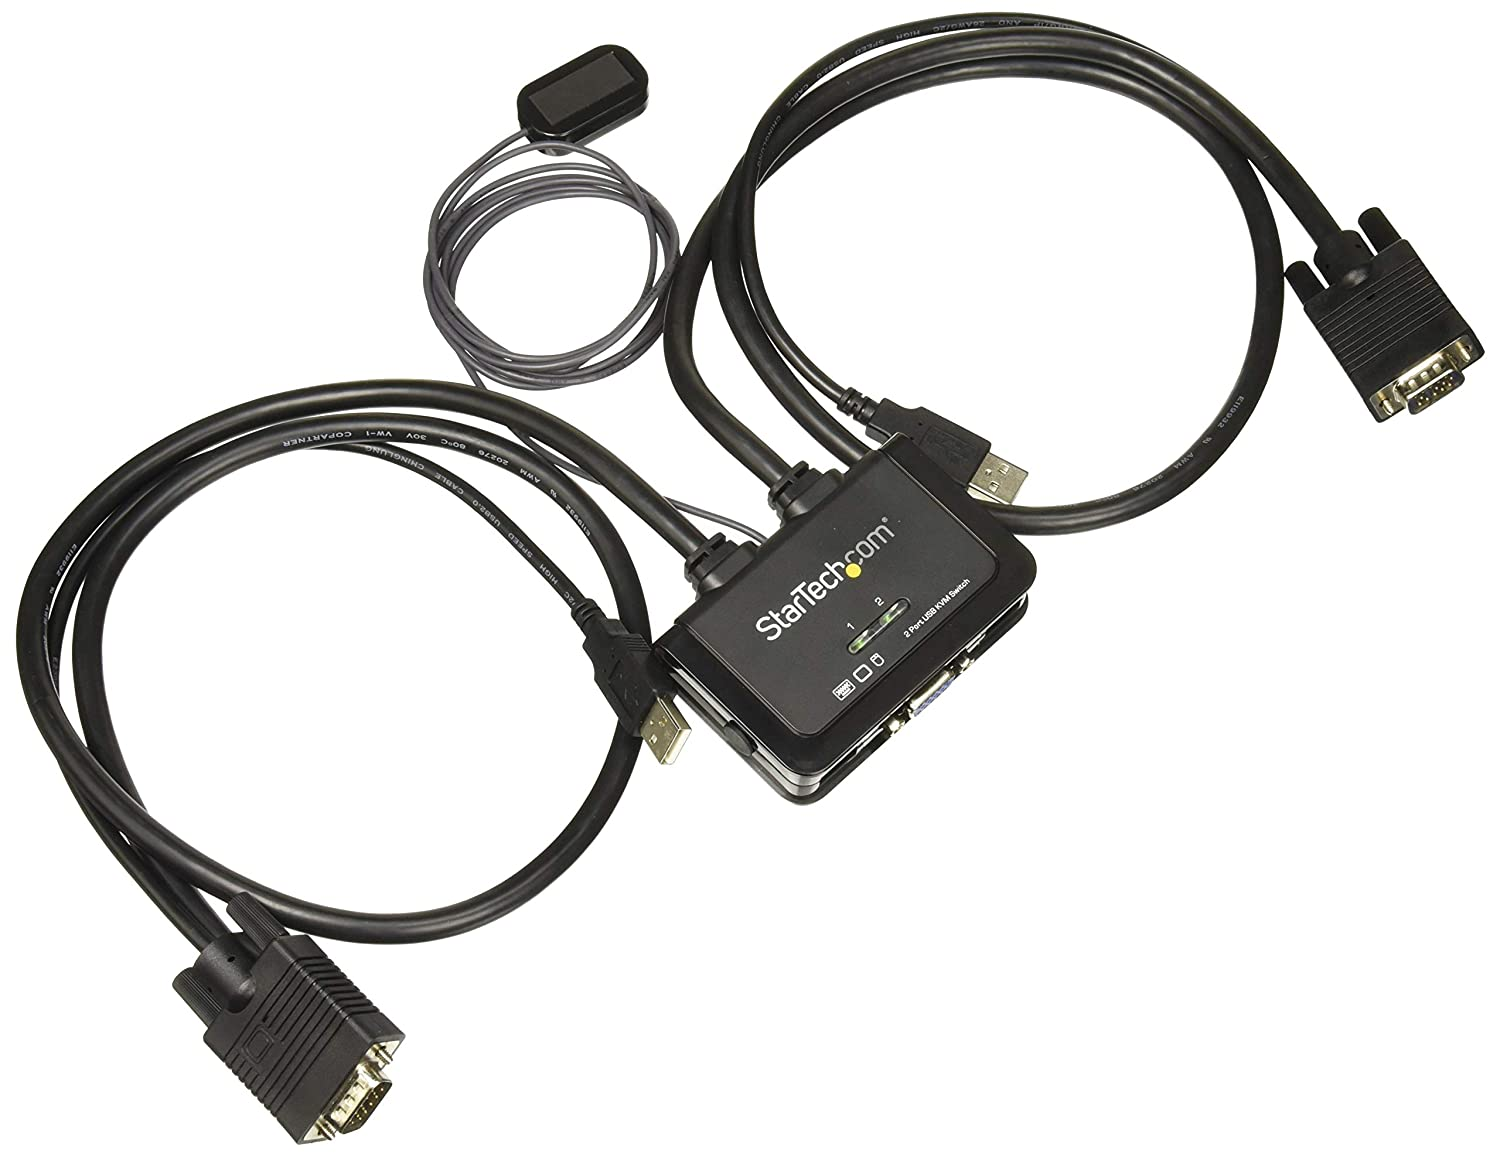 Startech.com 2 Port Usb Hdmi Cable Kvm Switch With Audio And Remote Switch Usb